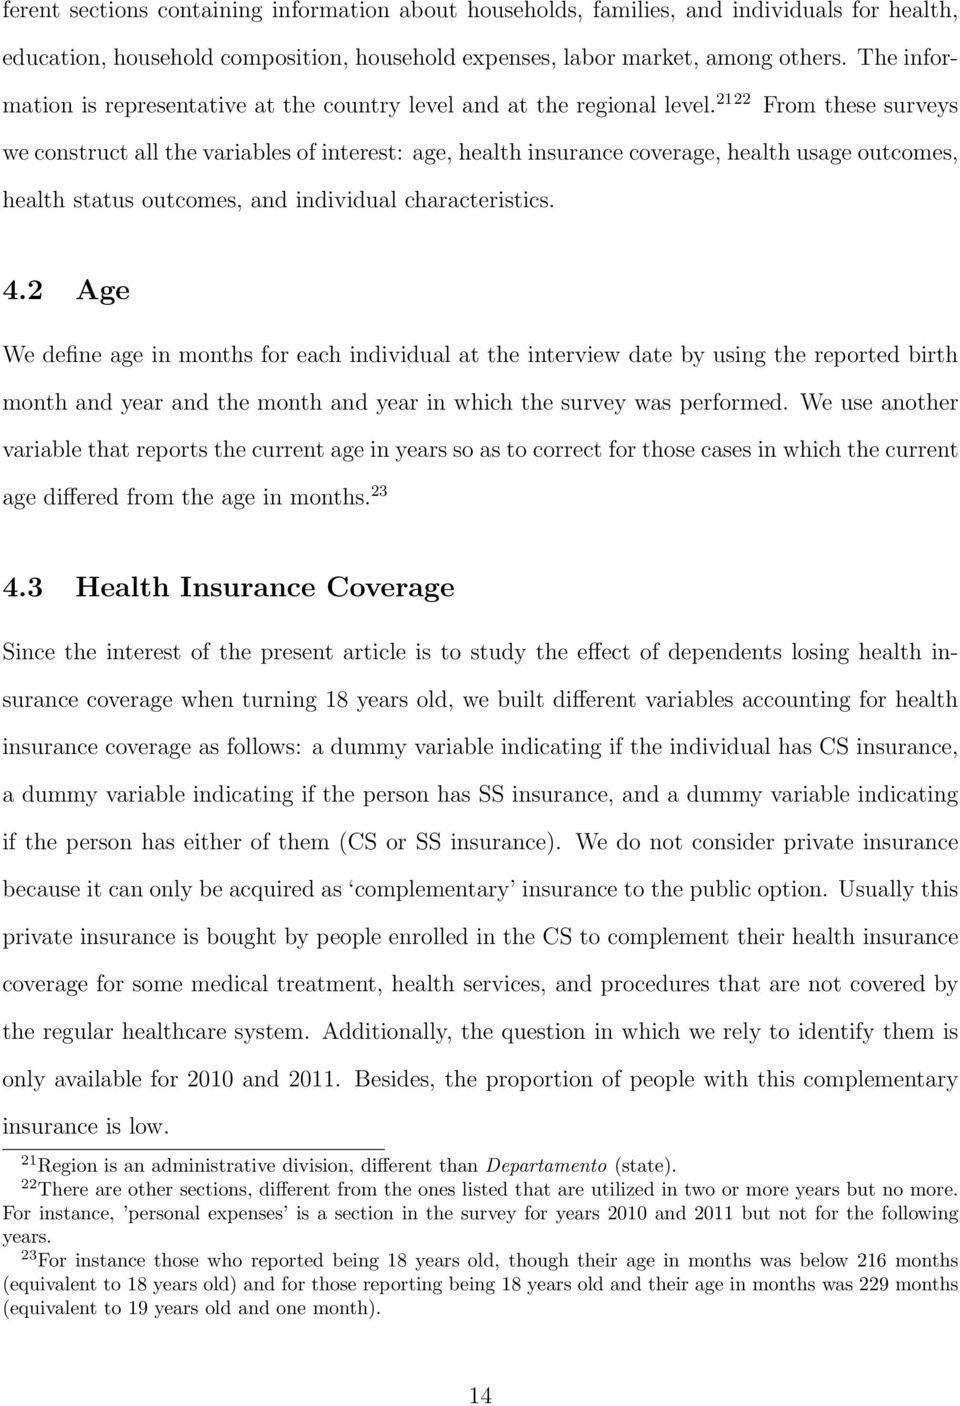 2122 From these surveys we construct all the variables of interest: age, health insurance coverage, health usage outcomes, health status outcomes, and individual characteristics. 4.